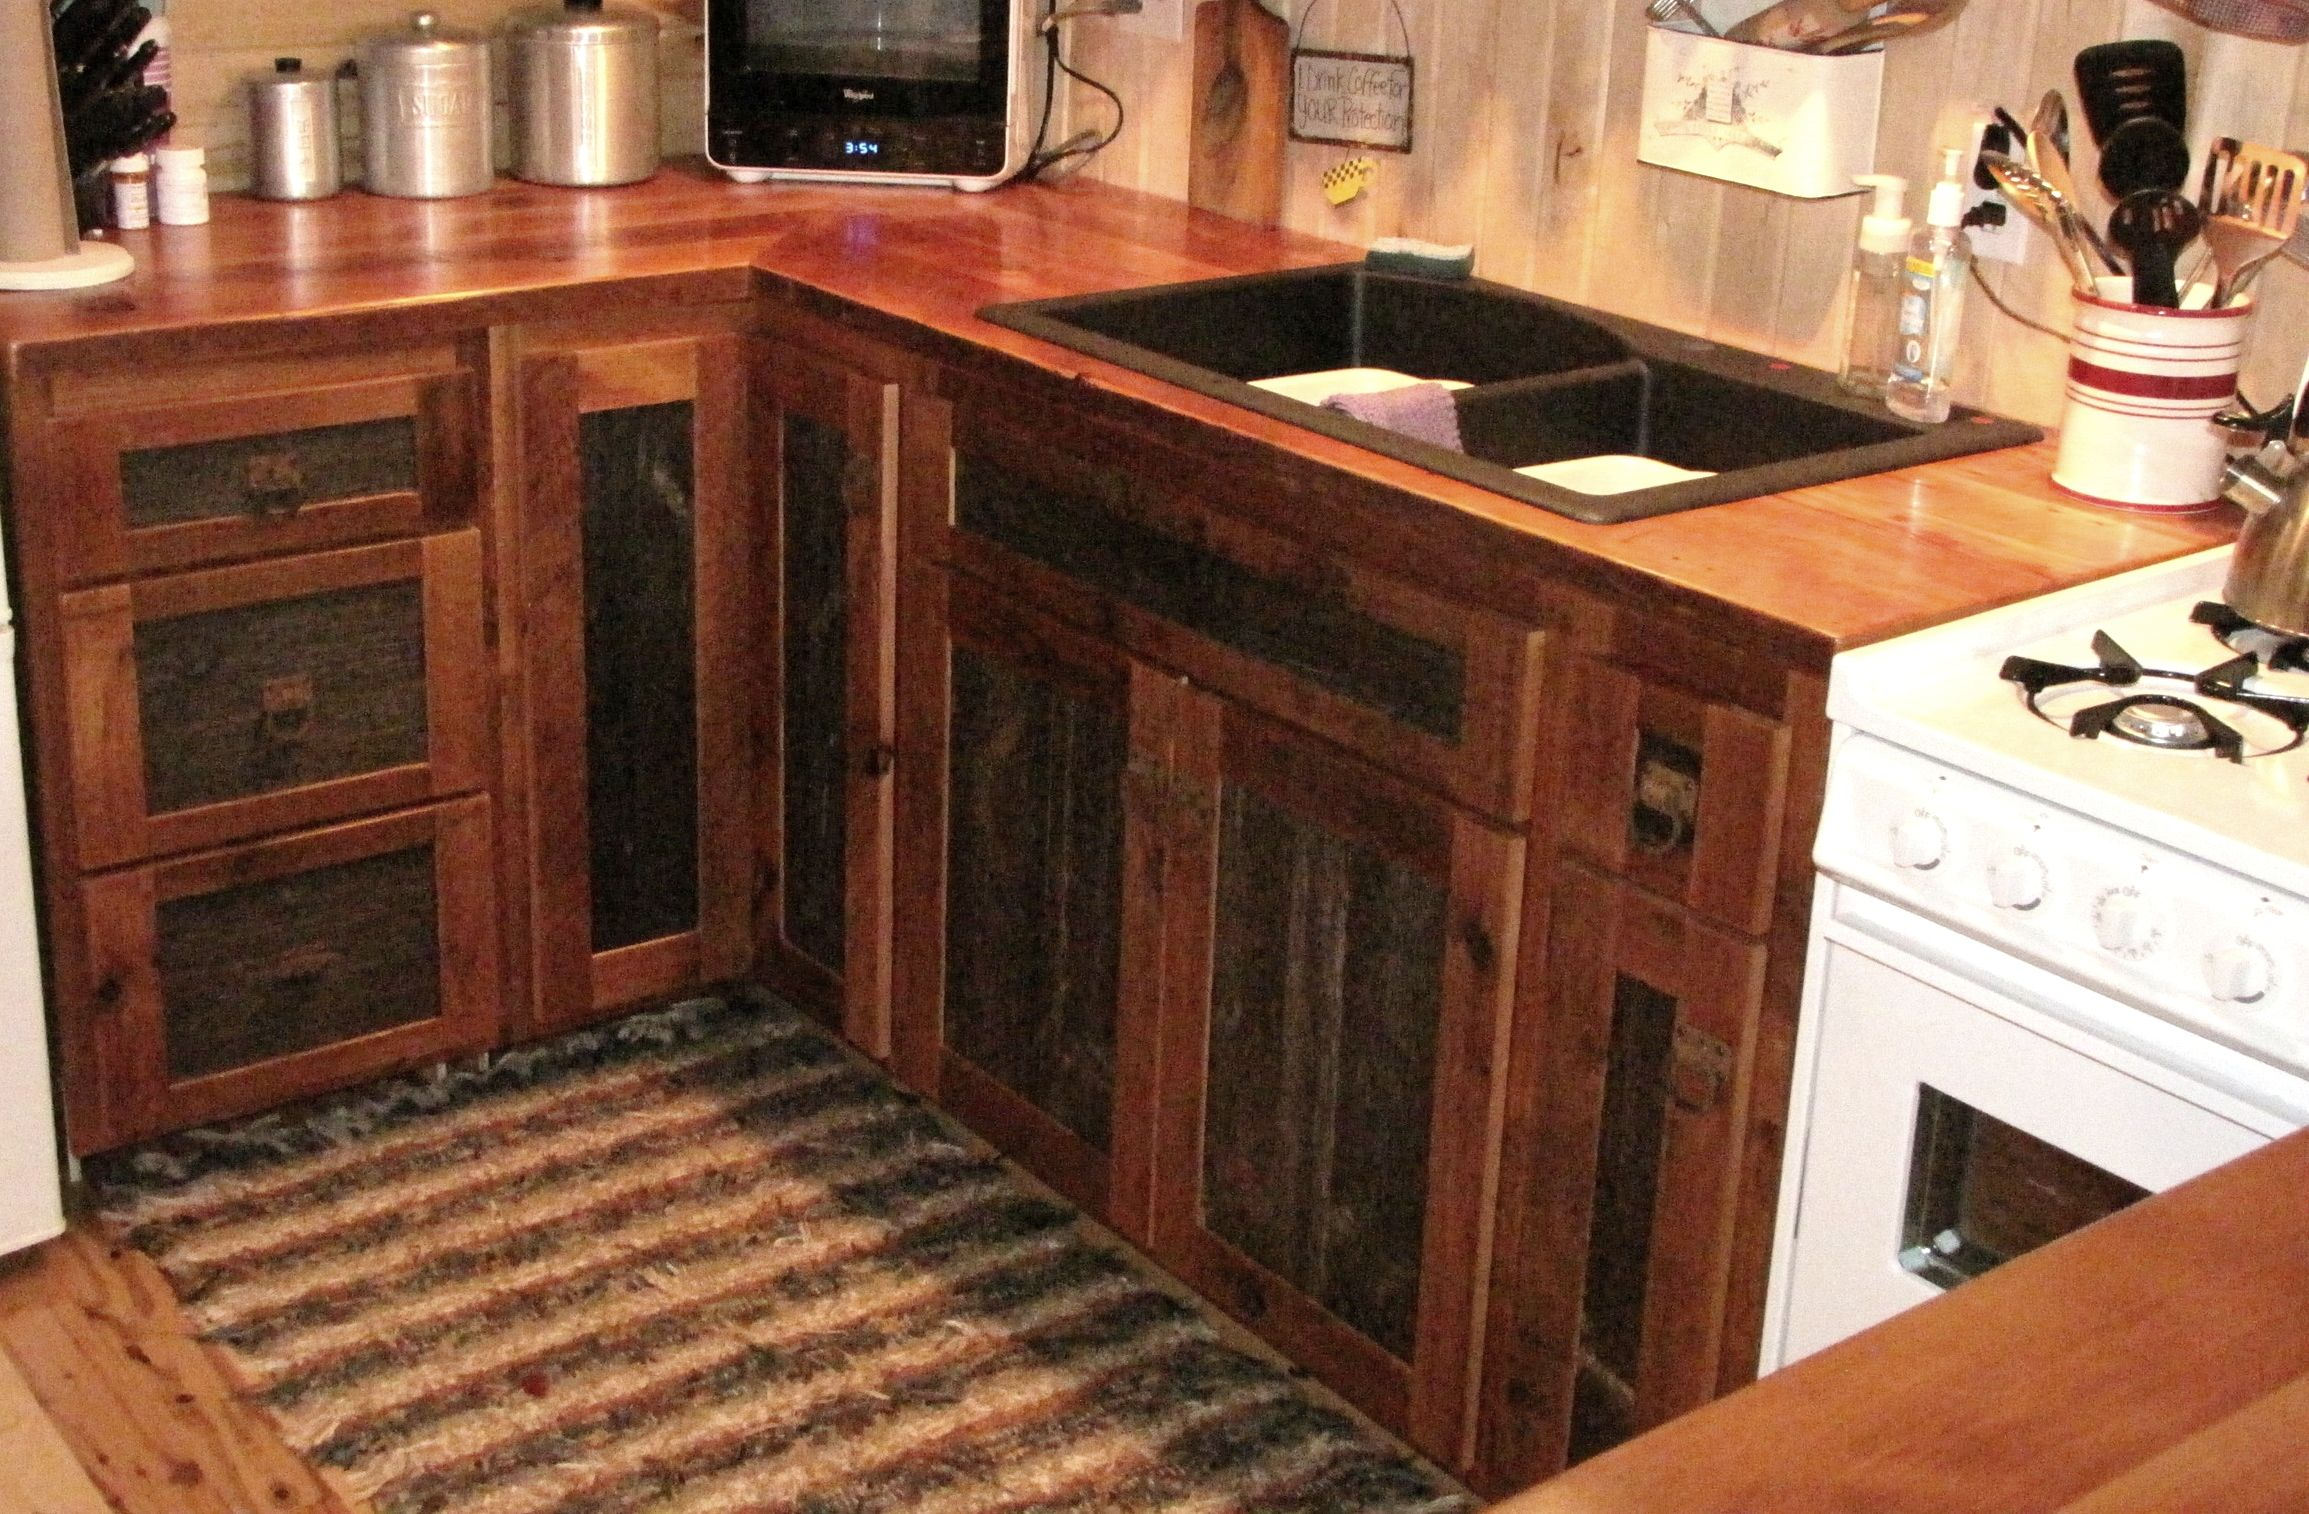 gray and brown kitchen.jpg